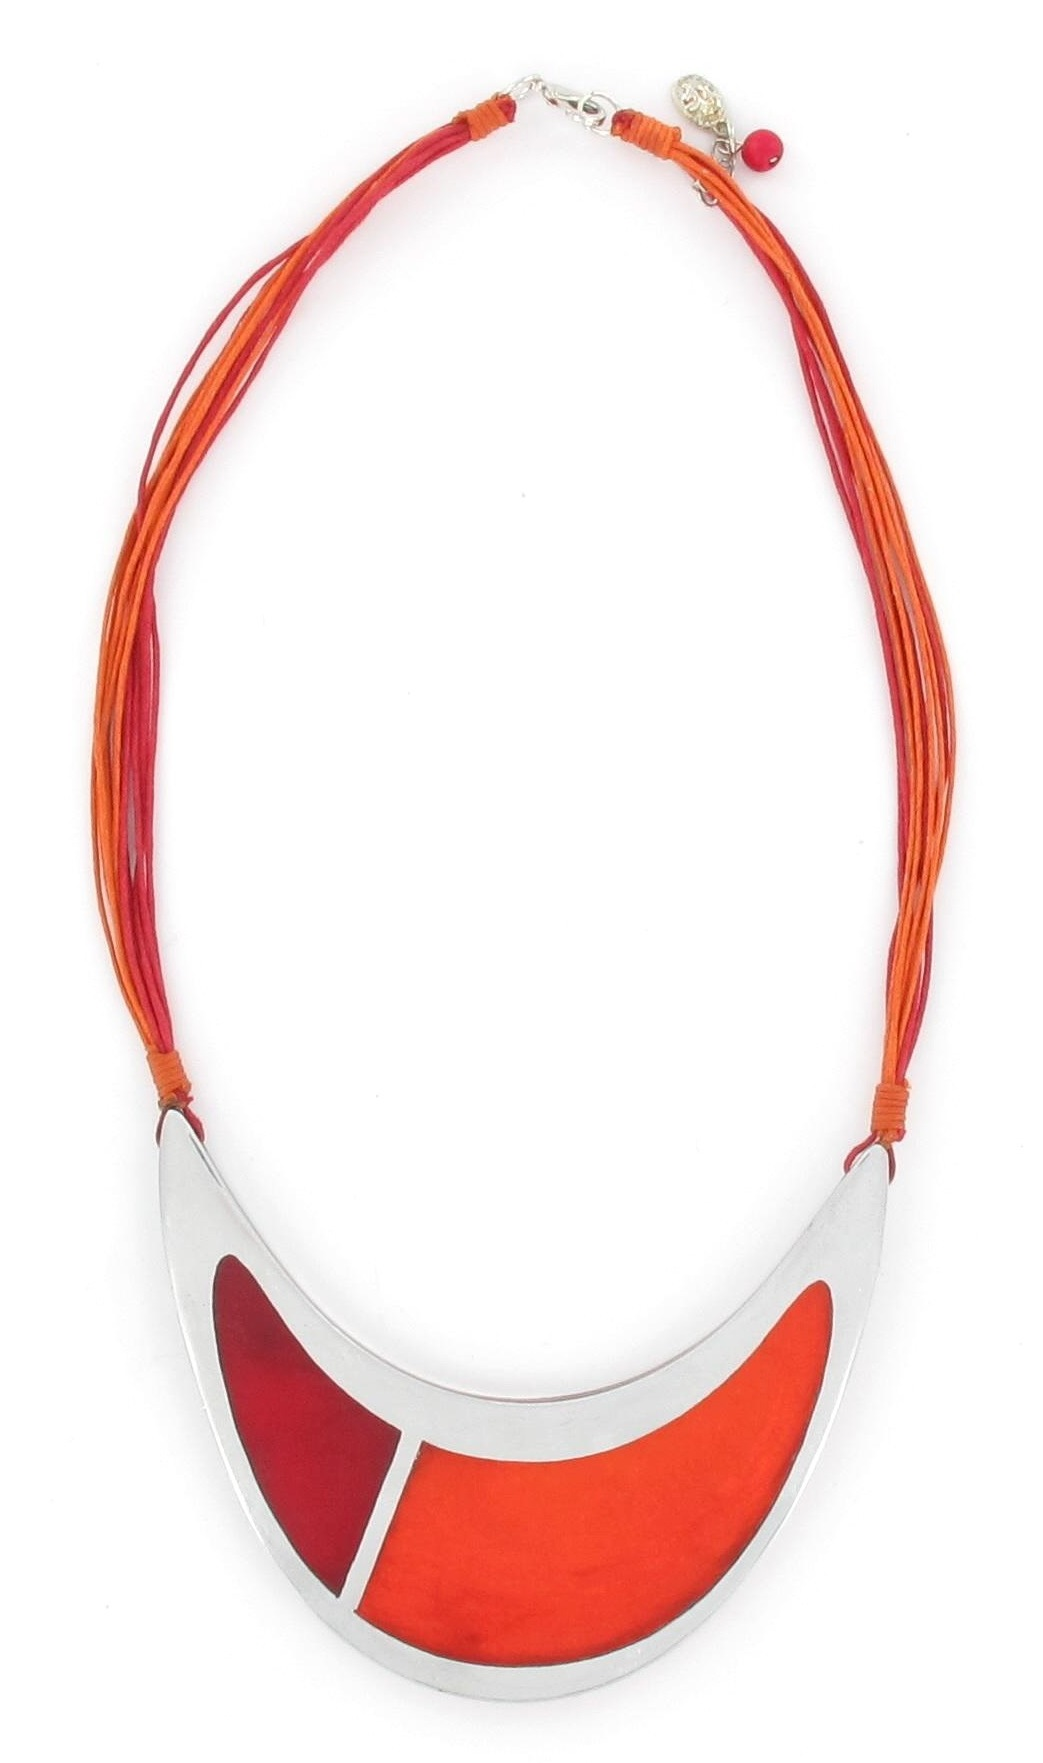 Collier1R_02 - copie (1)